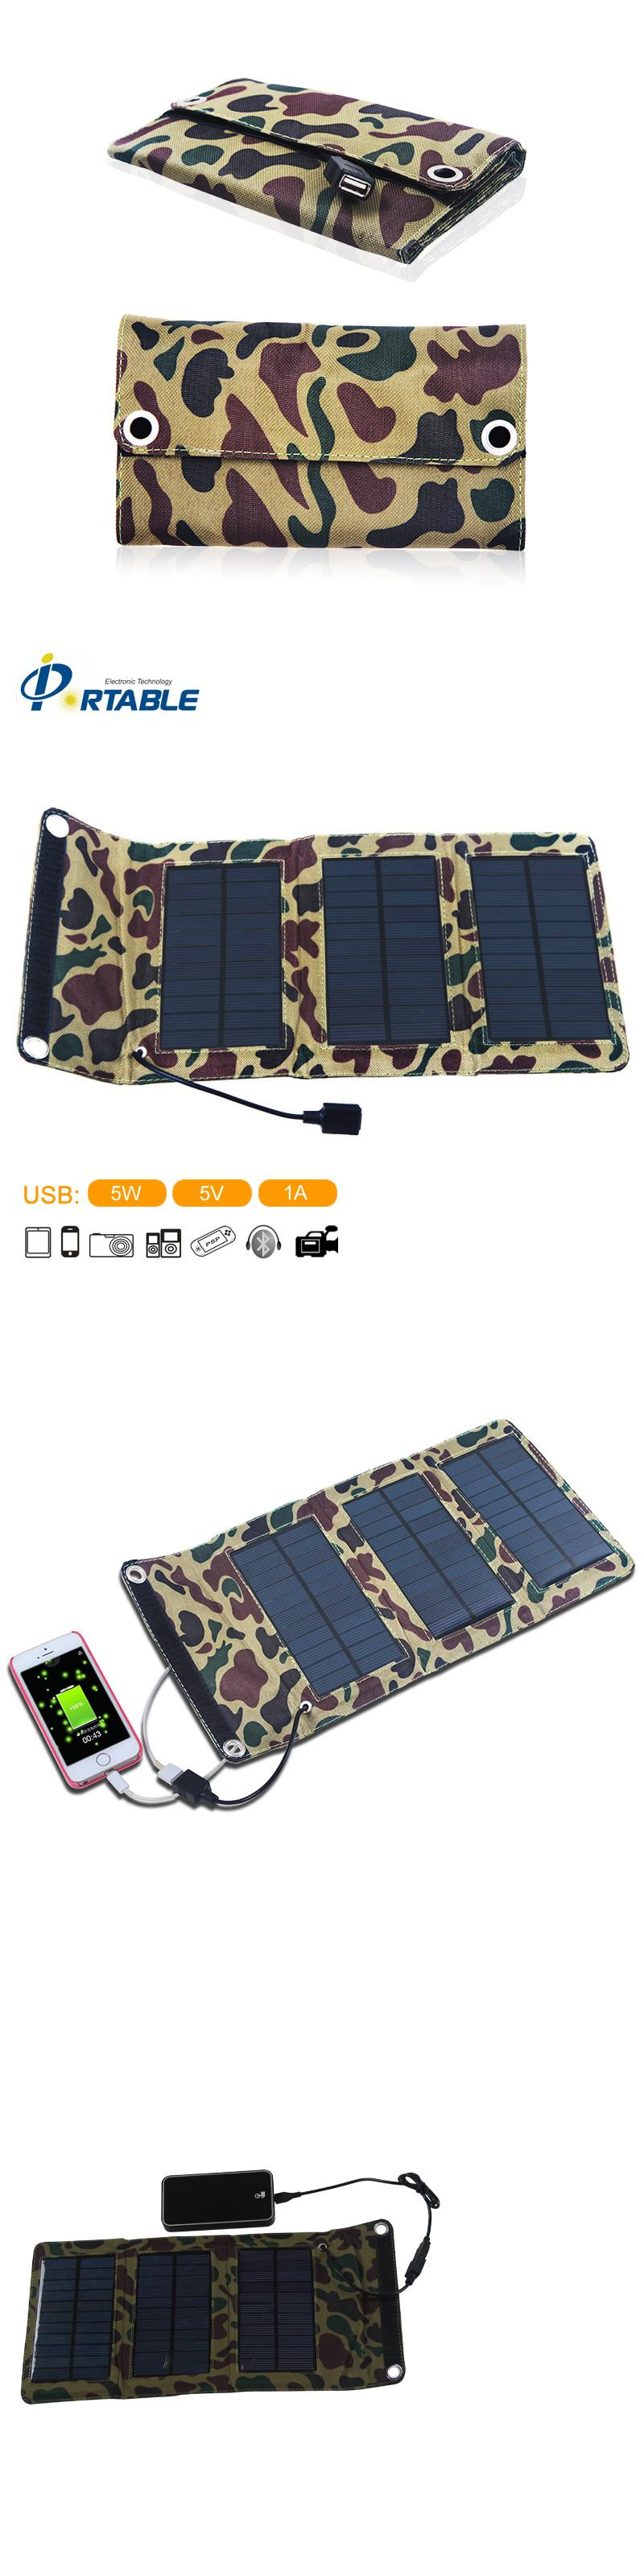 5w portable solar charger outdoor folding charger bag solar panel in